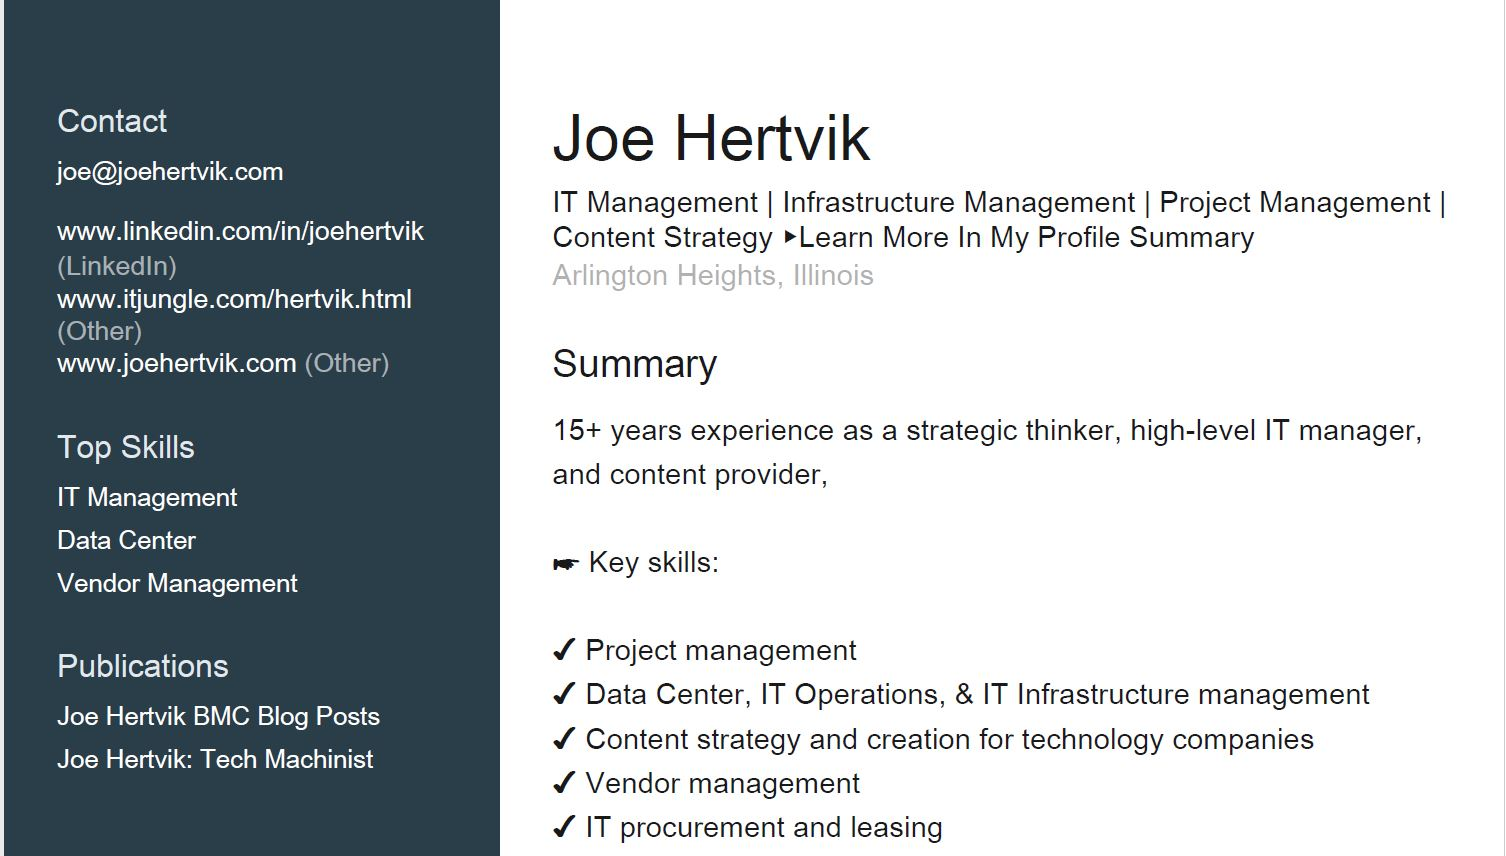 There are two ways to print your LinkedIn profileJoe Hertvik: Tech